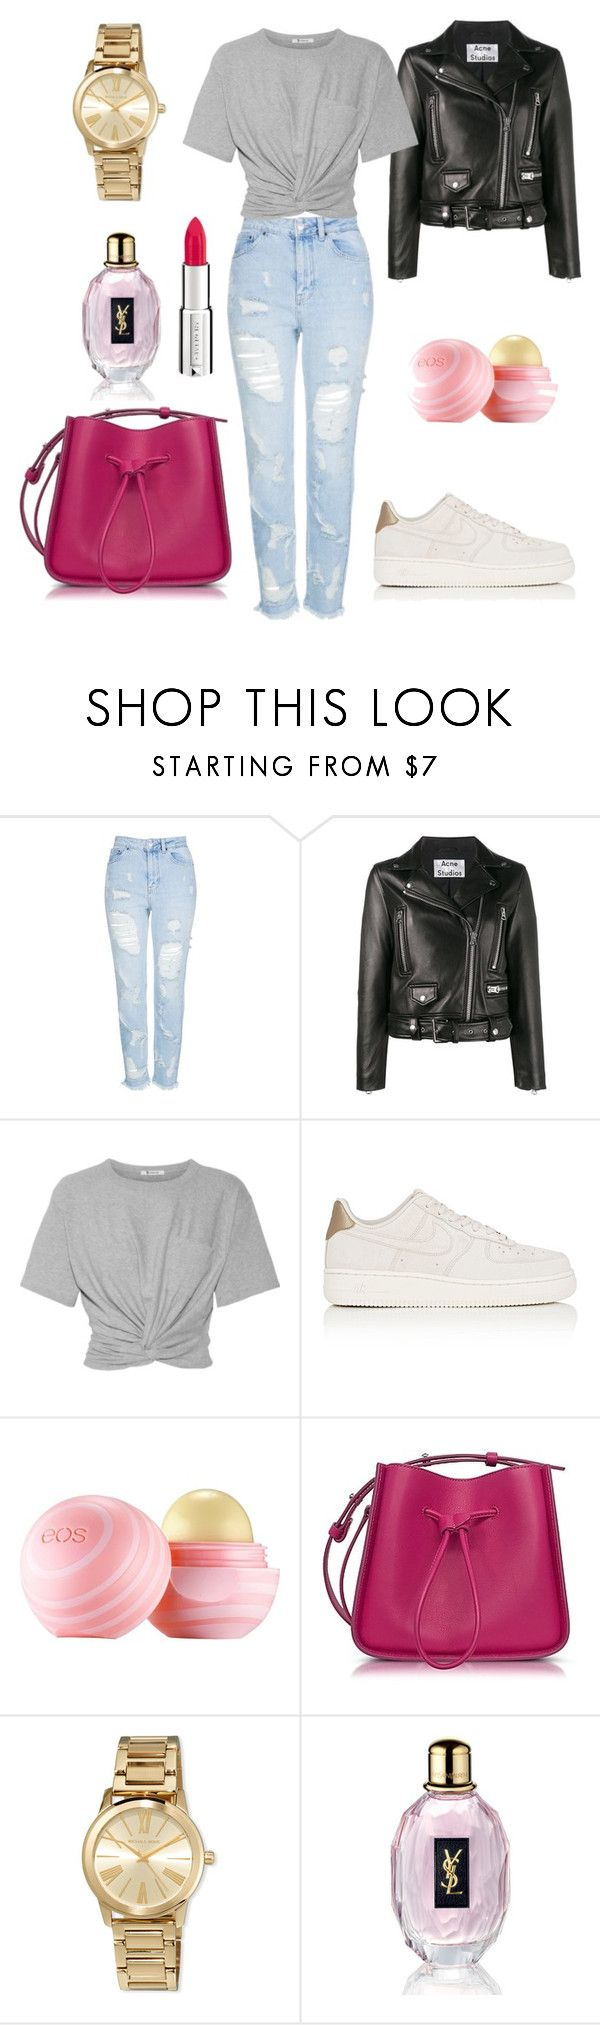 """Style"" by darnelll ❤ liked on Polyvore featuring Topshop, Acne Studios, T By Alexander Wang, NIKE, Eos, 3.1 Phillip Lim, MICHAEL Michael Kors, Yves Saint Laurent and Givenchy"